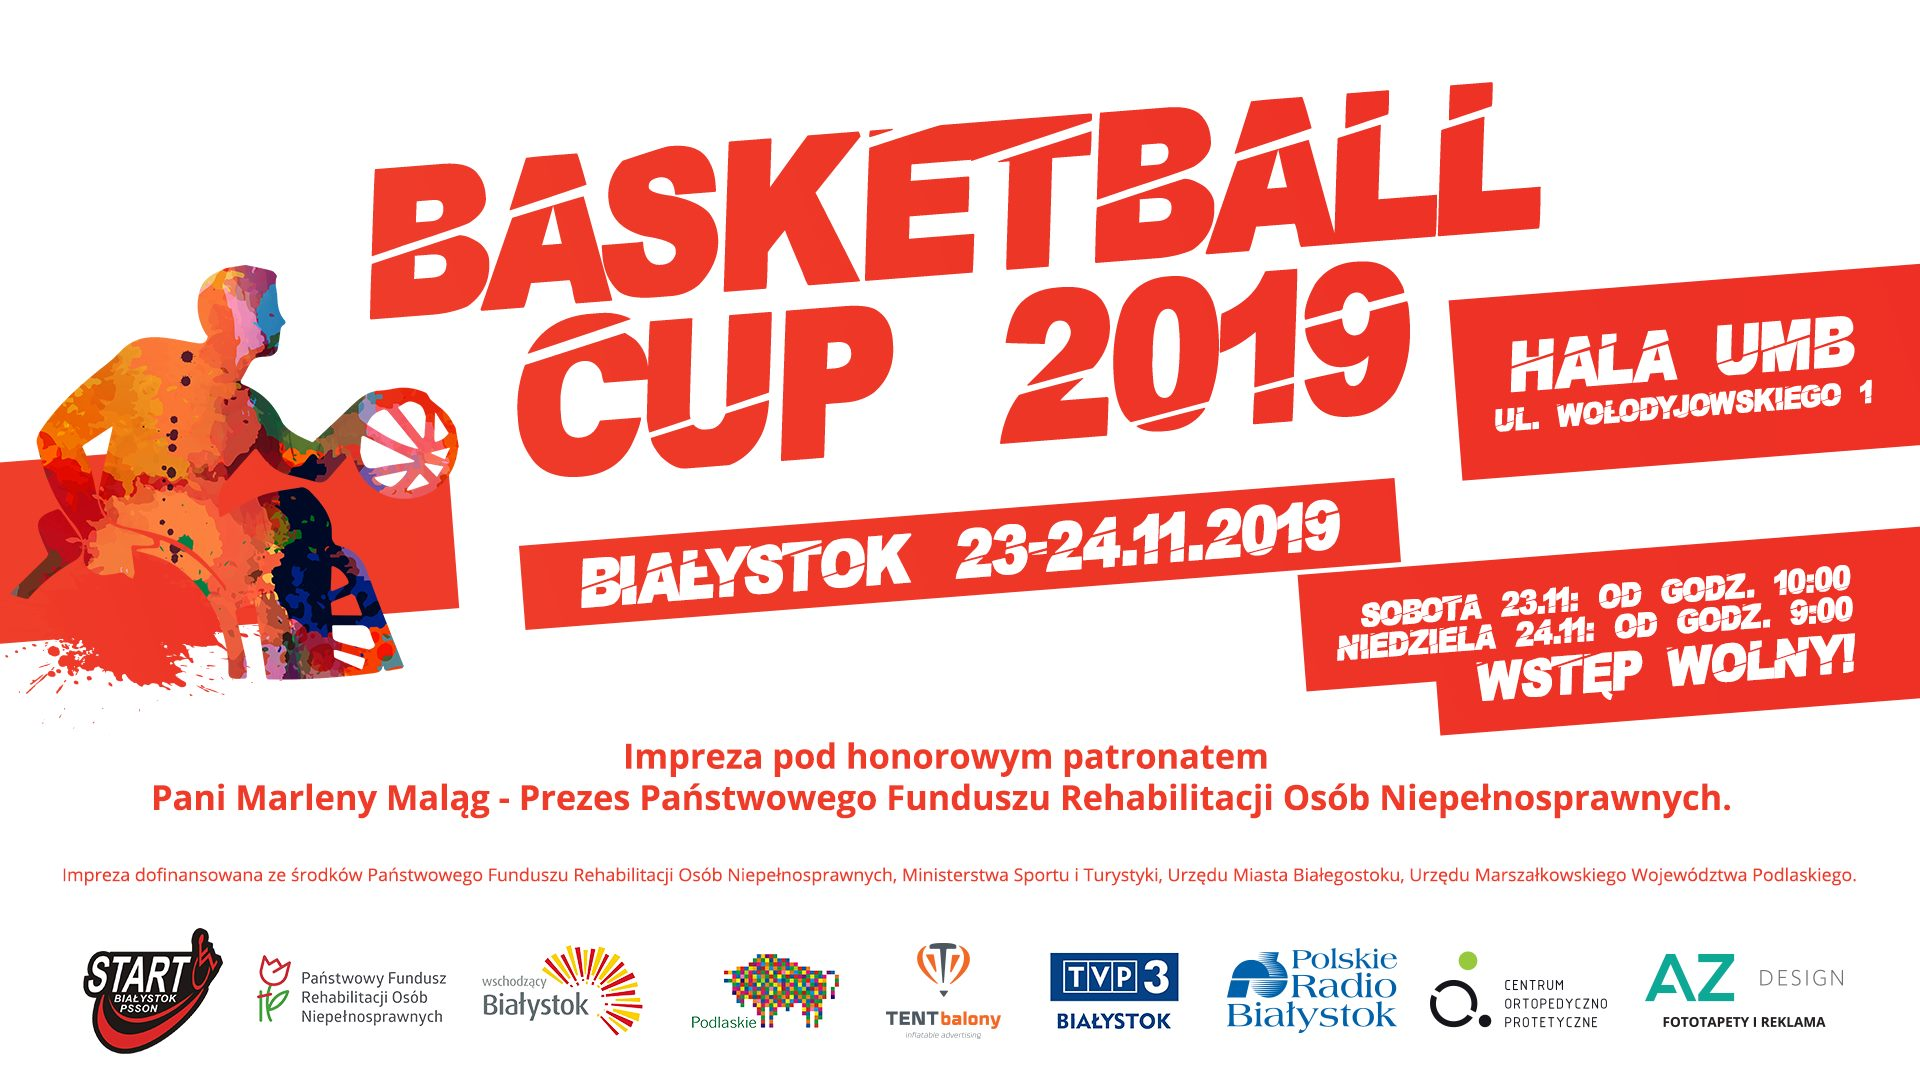 Basketball CUP 2019 Bialystok